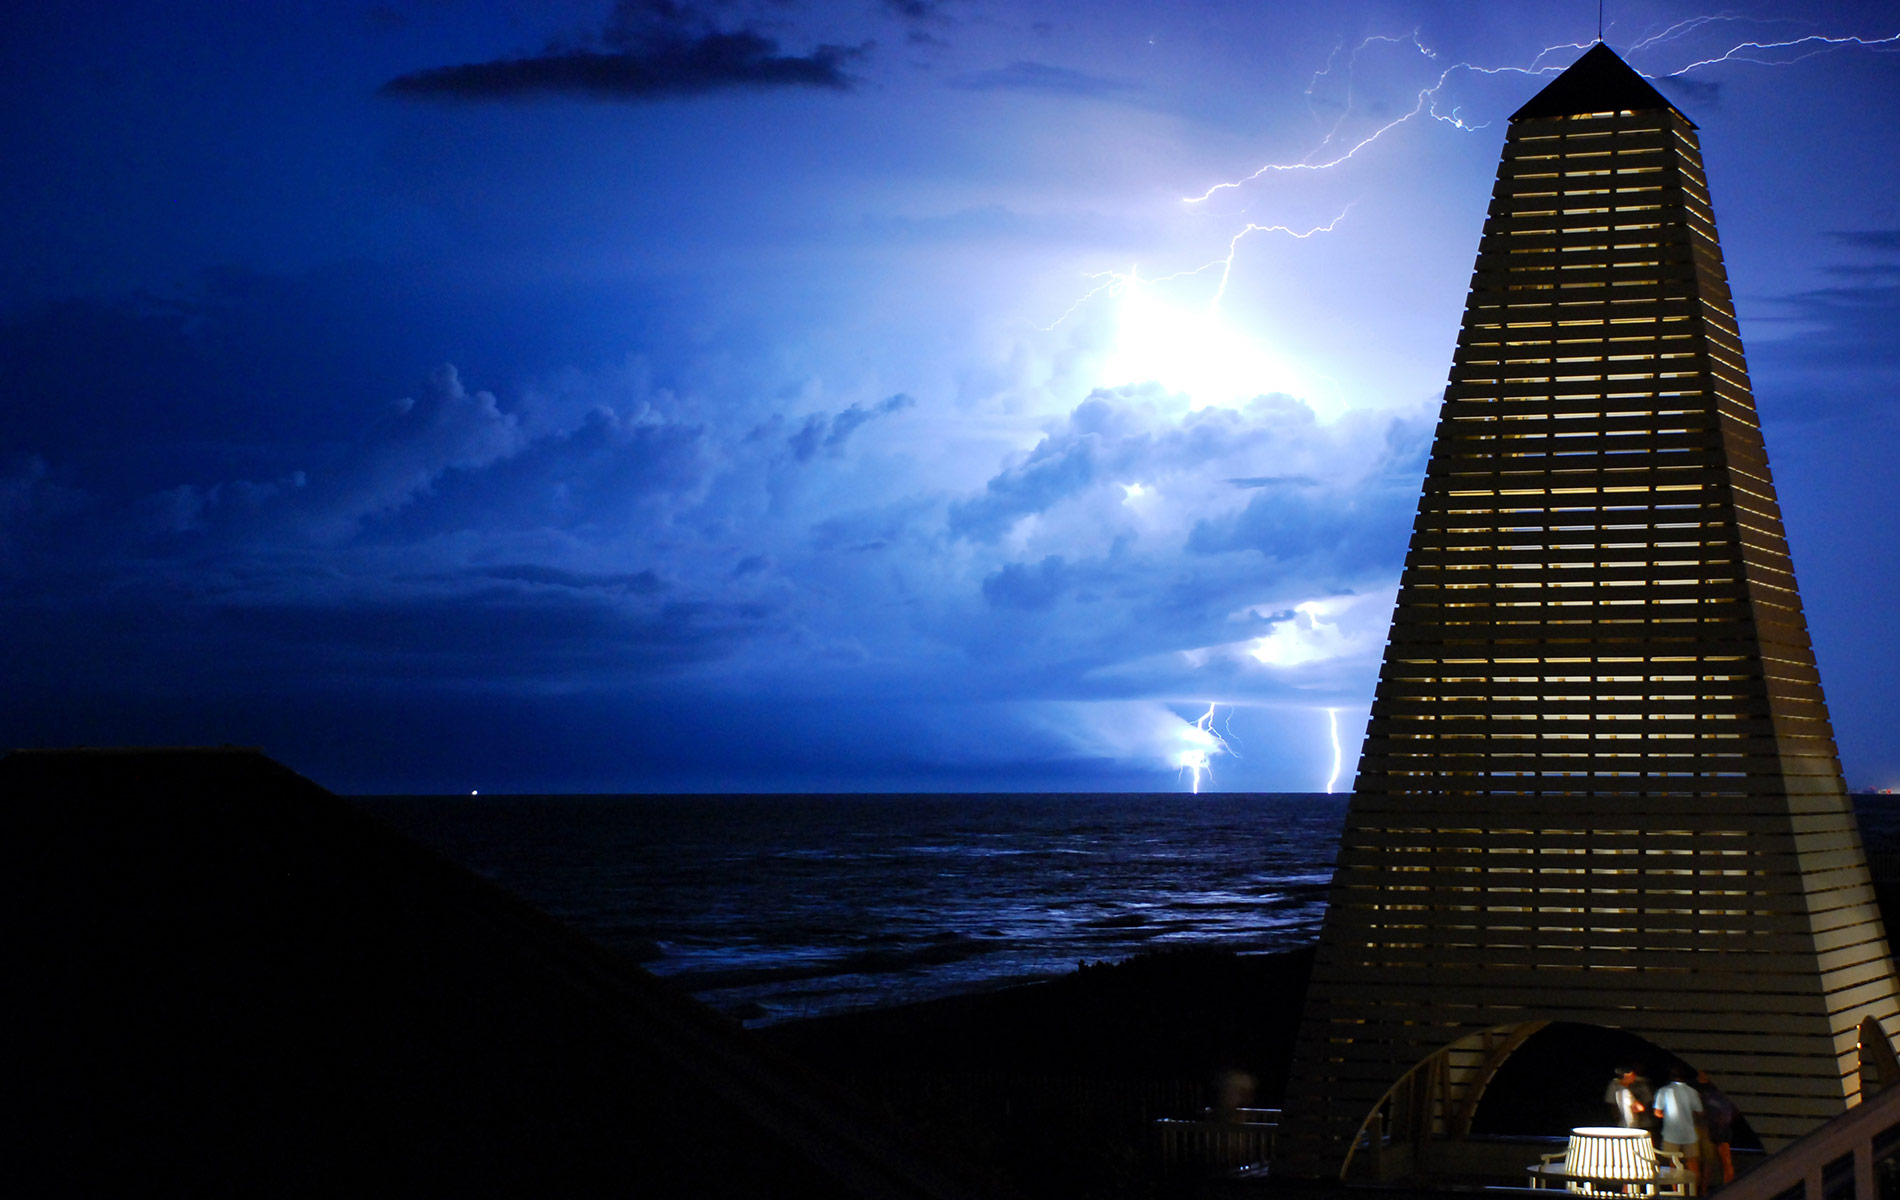 """Lighting Strikes Twice""- by Brandan Babineaux photography contest vie magazine"